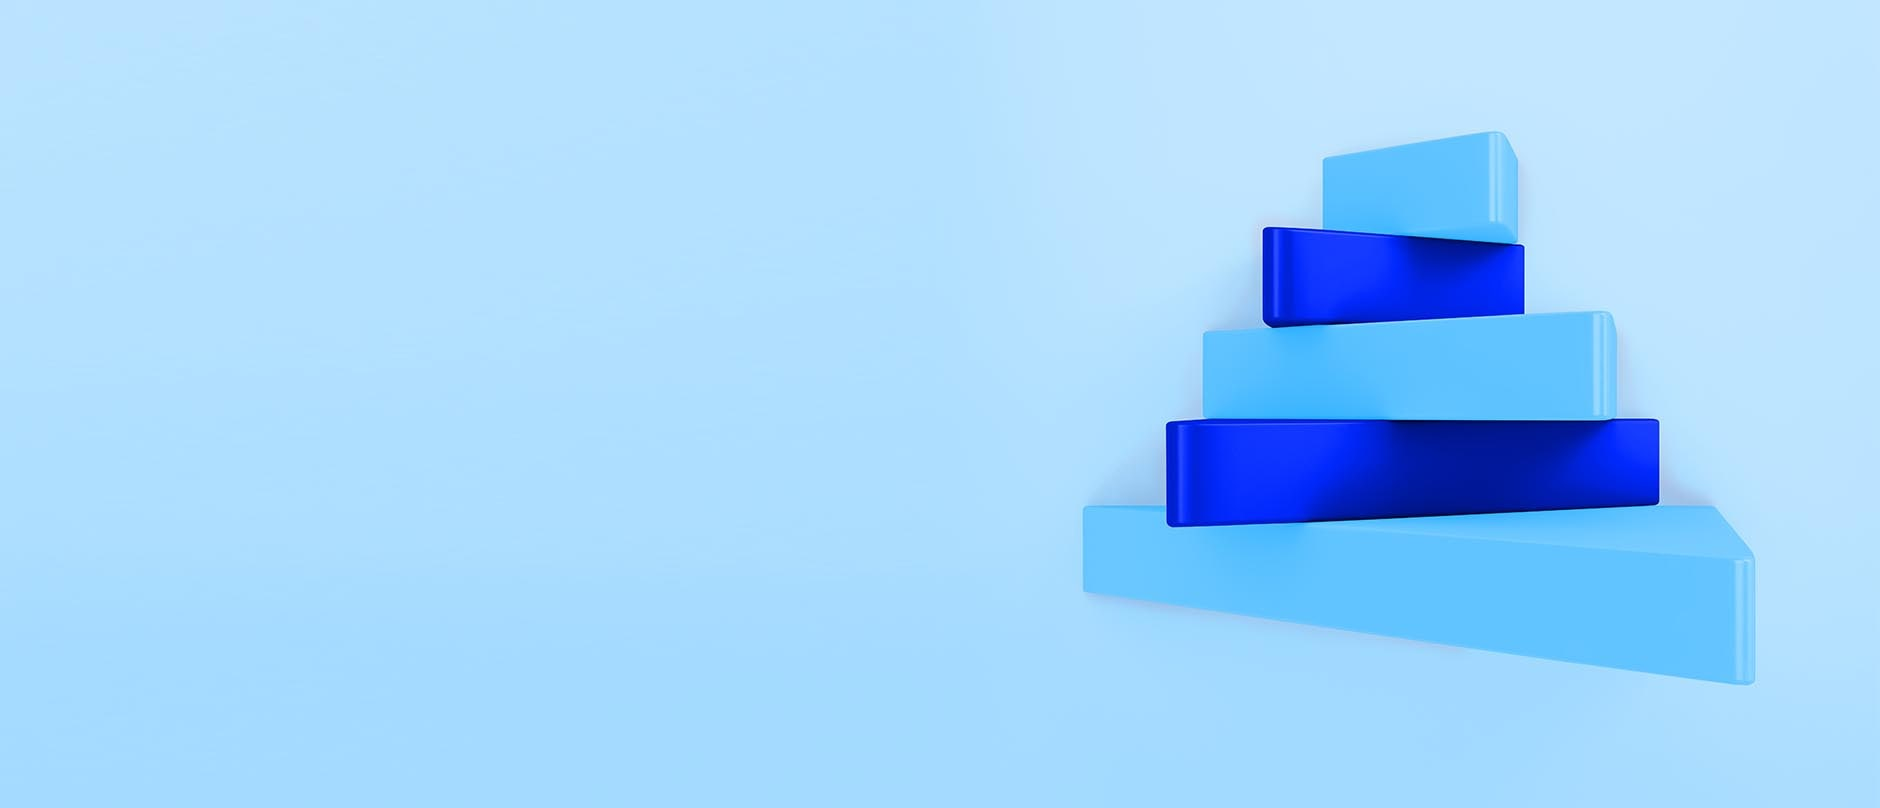 blue triangle object stack